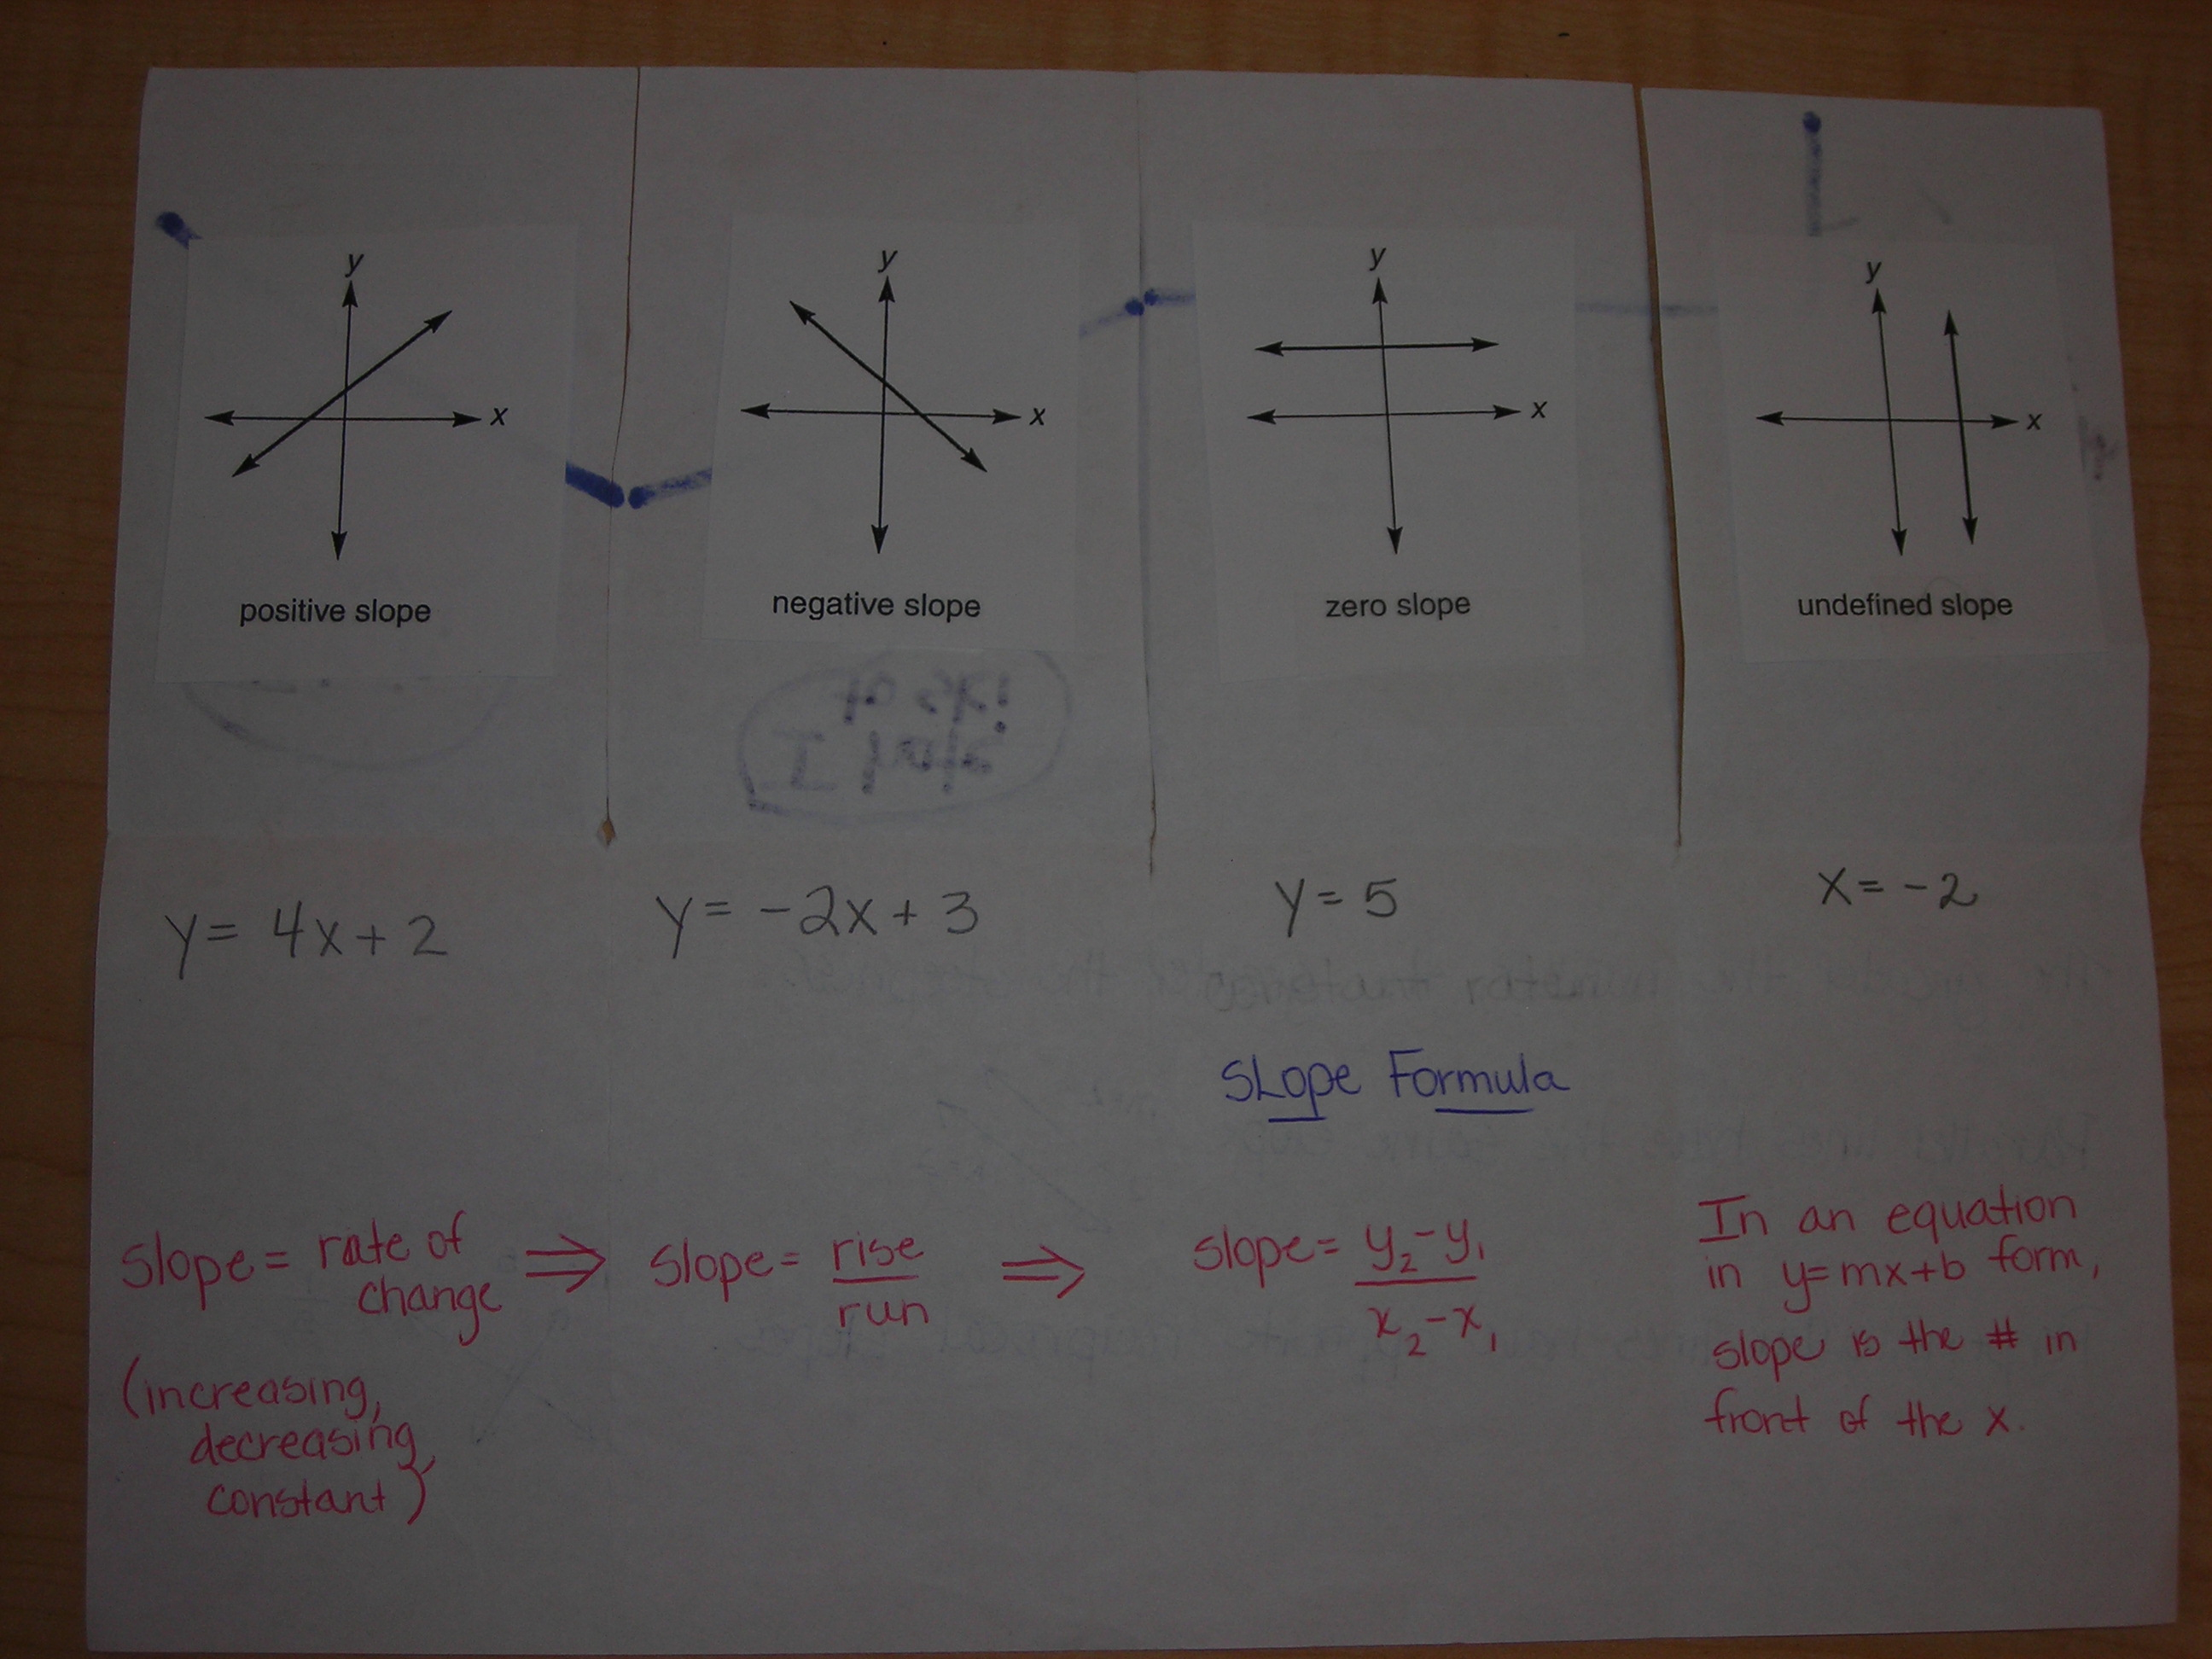 application of linear algebra in real life